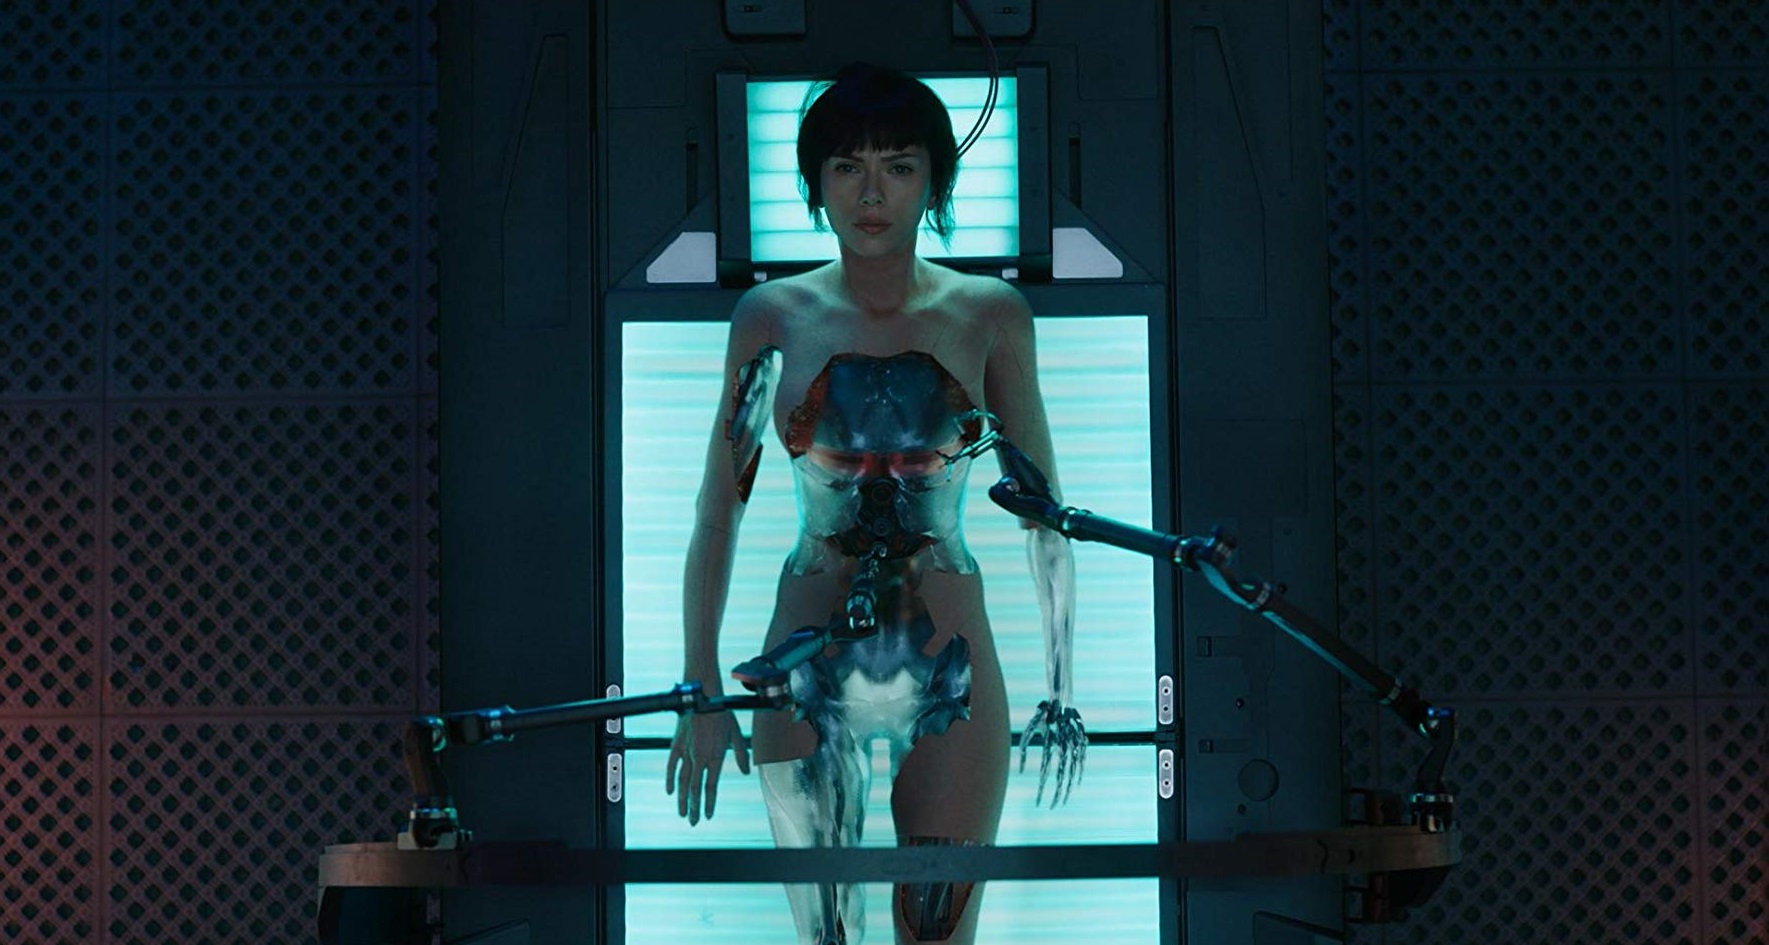 A cyborg Scarlett Johansson from Ghost in the Shell (2017)